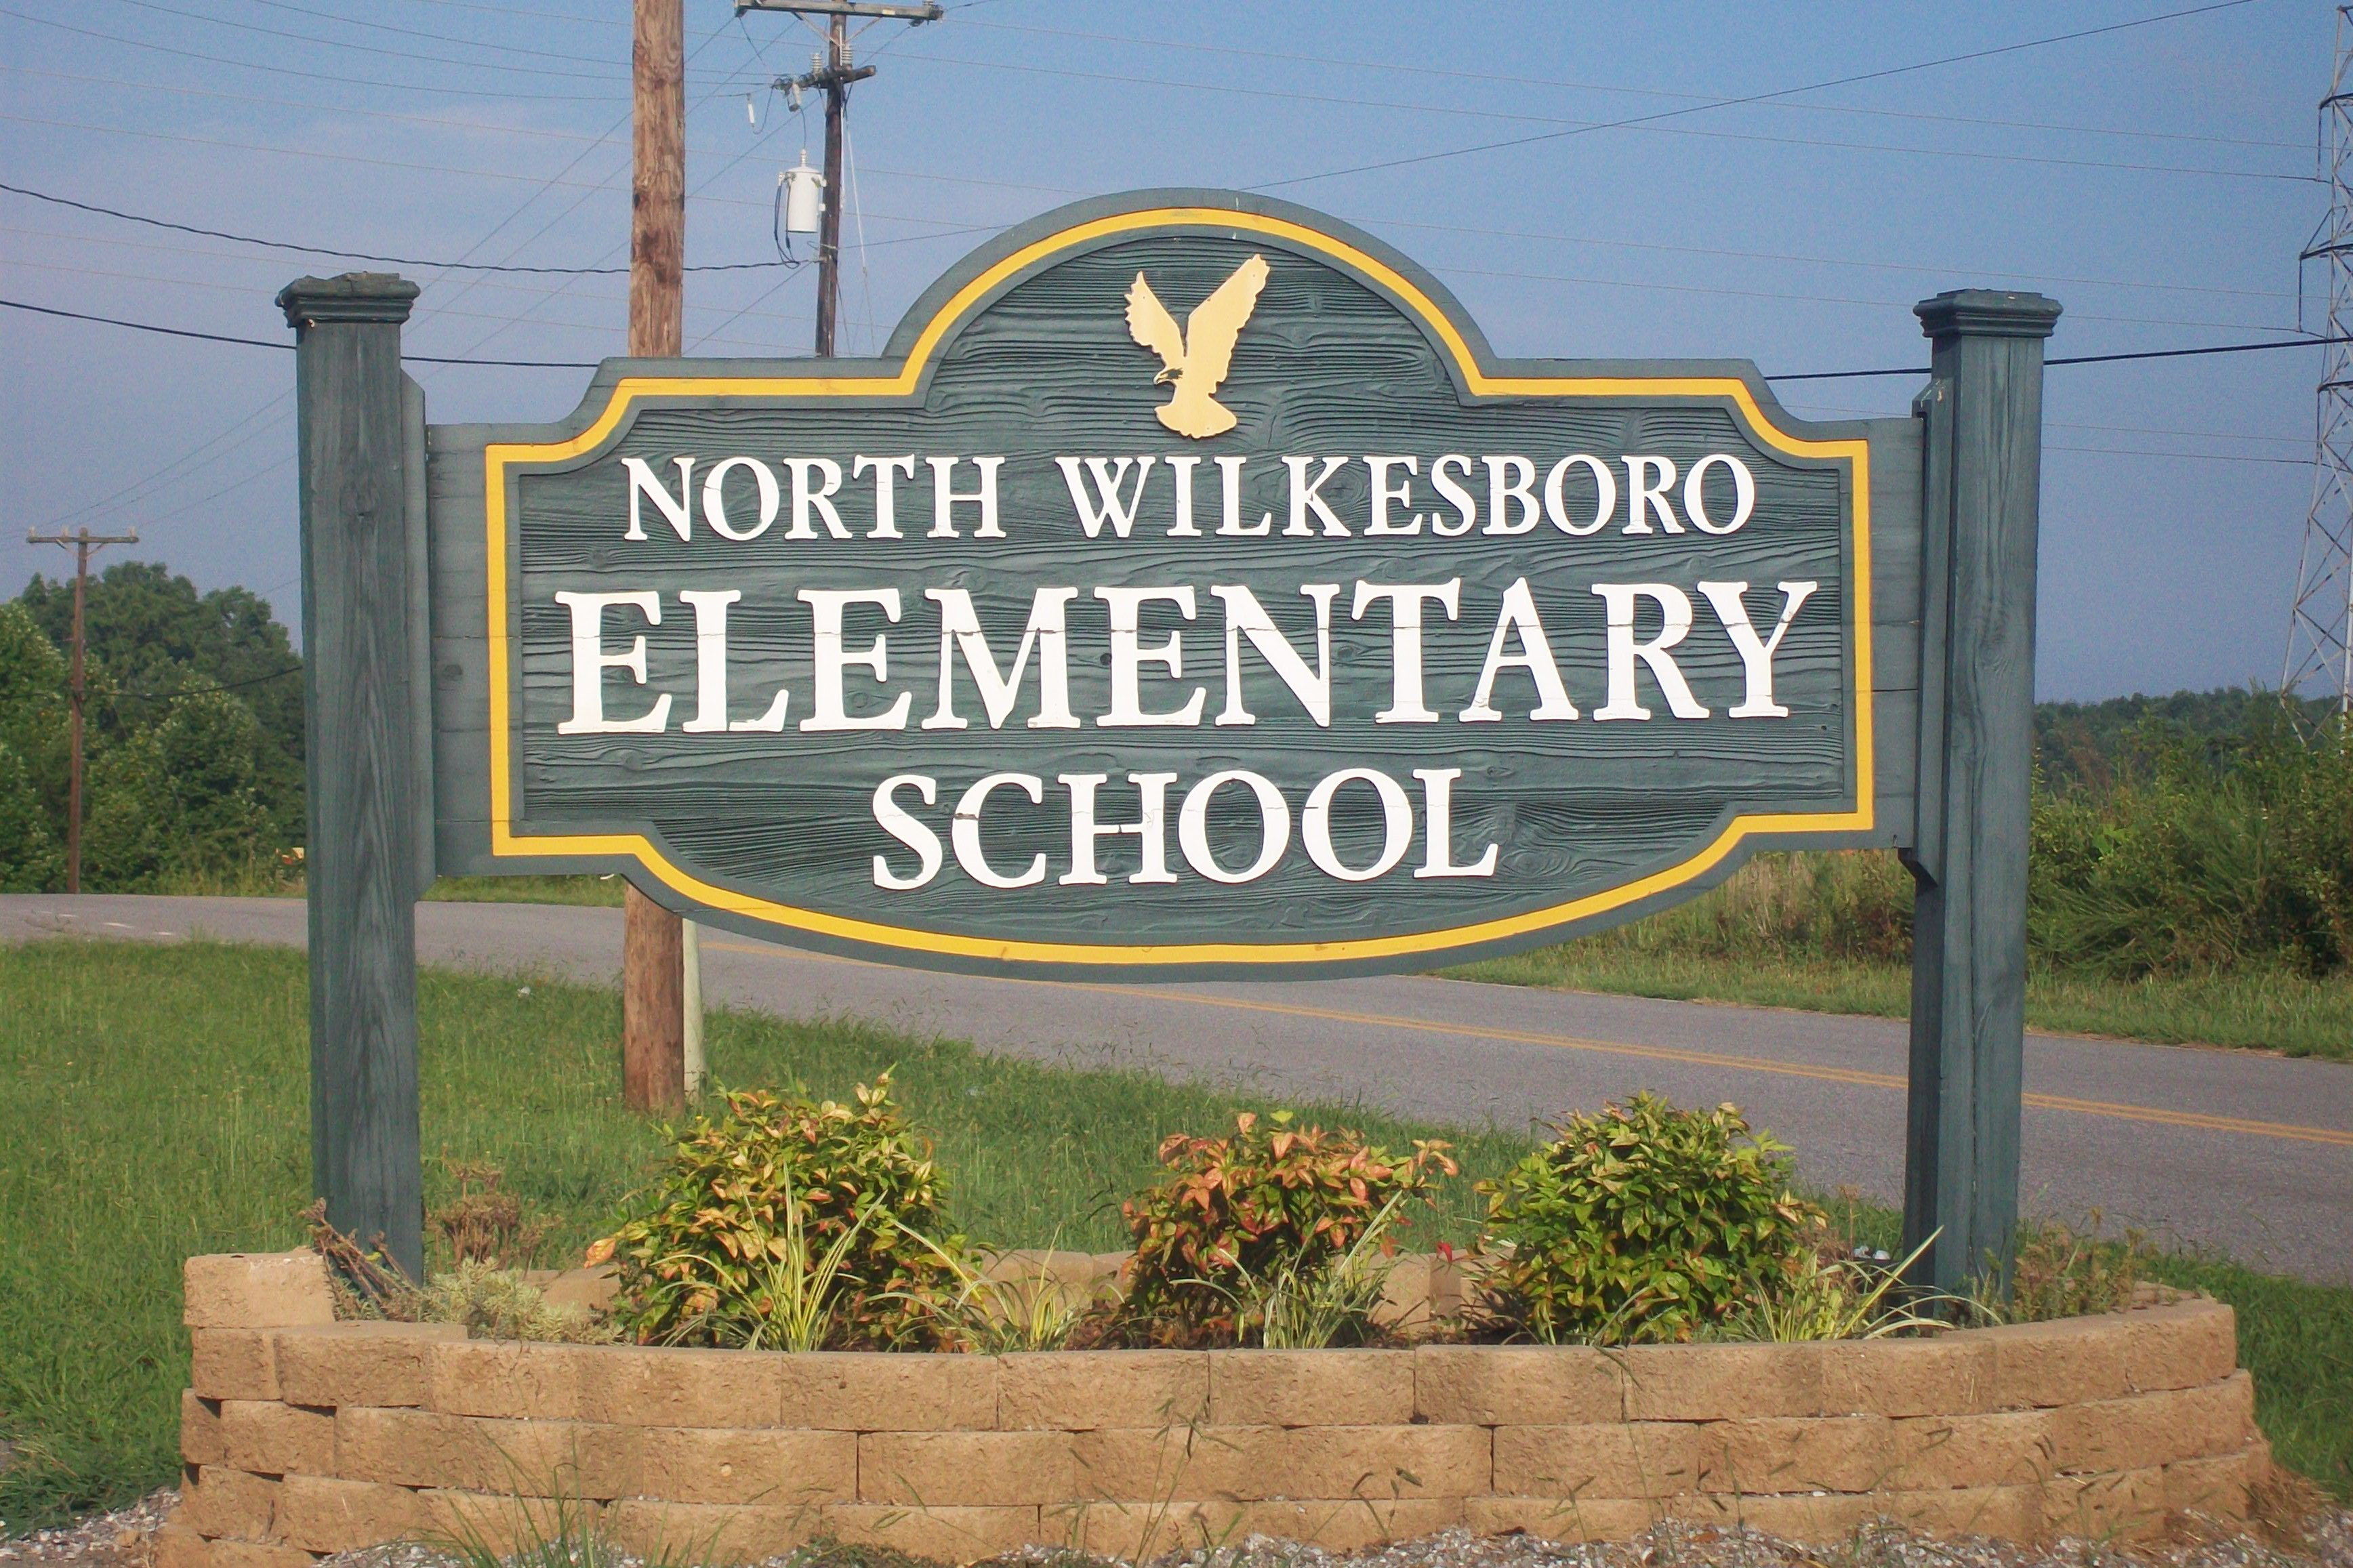 Welcome to North Wilkesboro Elementary School Image